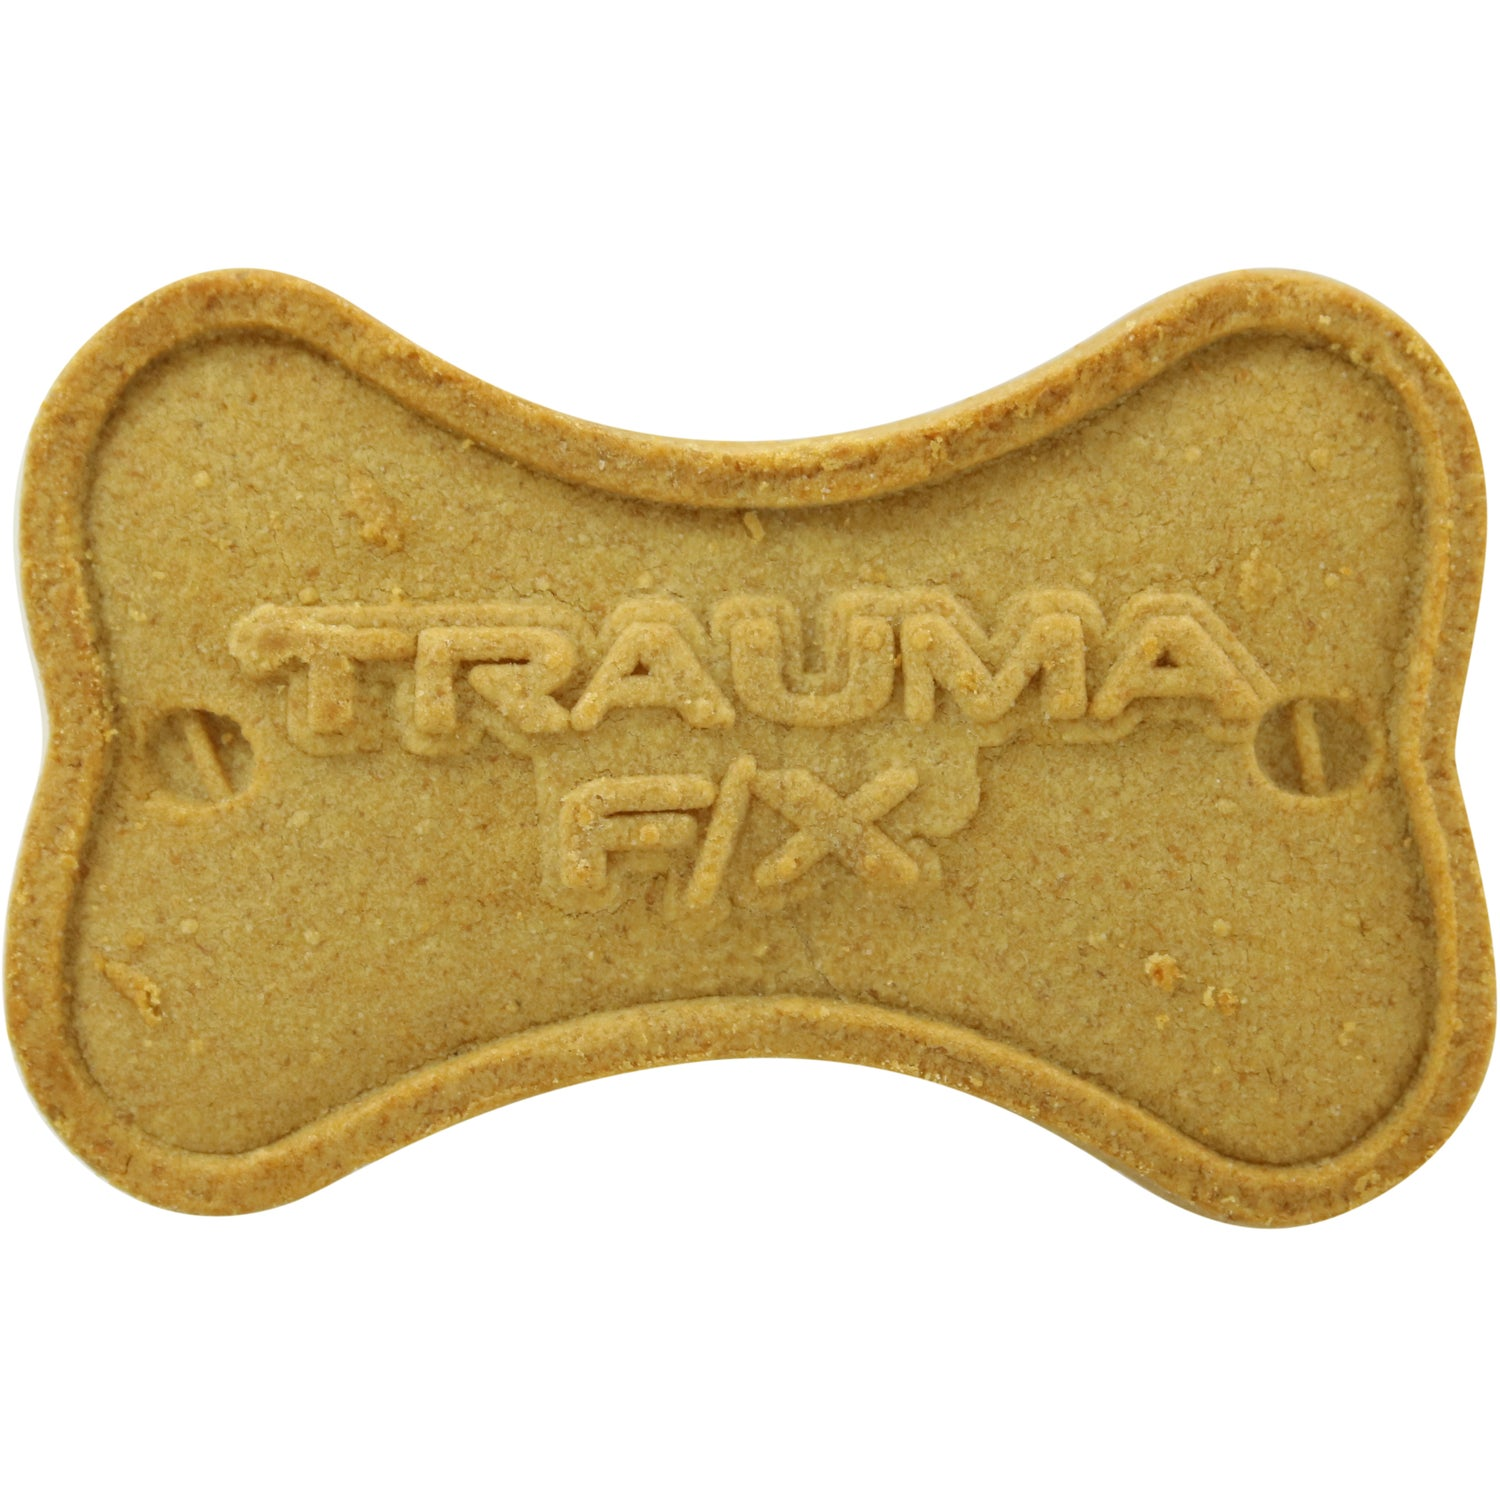 120d10520546 CLICK HERE to Order Bone Shaped Dog Biscuits Printed with Your Logo ...